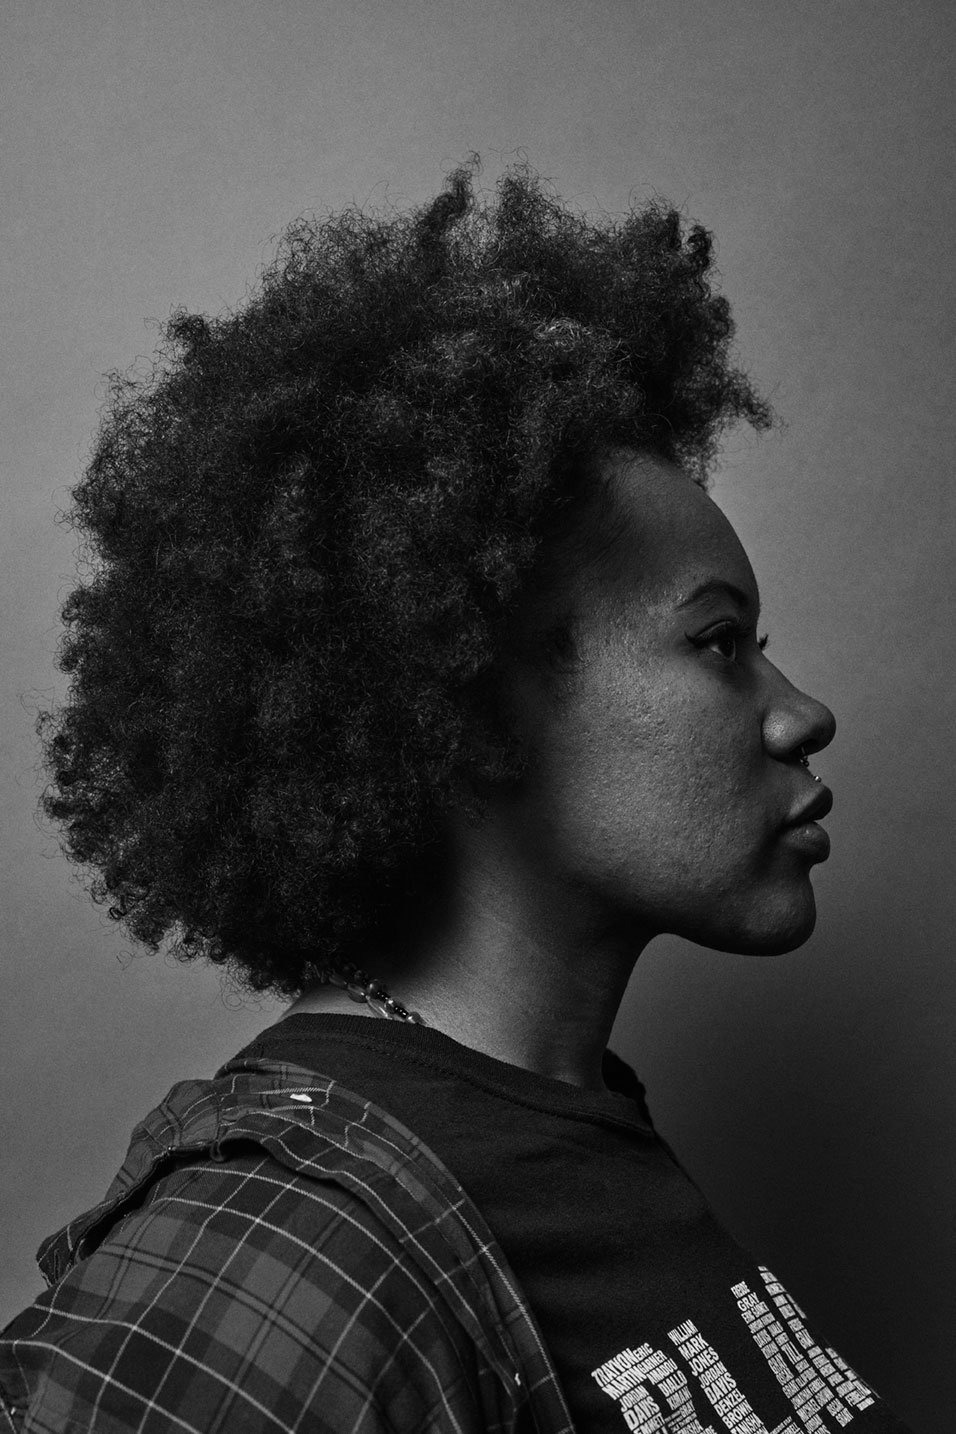 Profile black and white portrait of ShiShi Rose, community organizer and black wellness advocate for Romance Journal Issue 02 Resistance. Publication design, art direction, print design, interviews by RoAndCo.